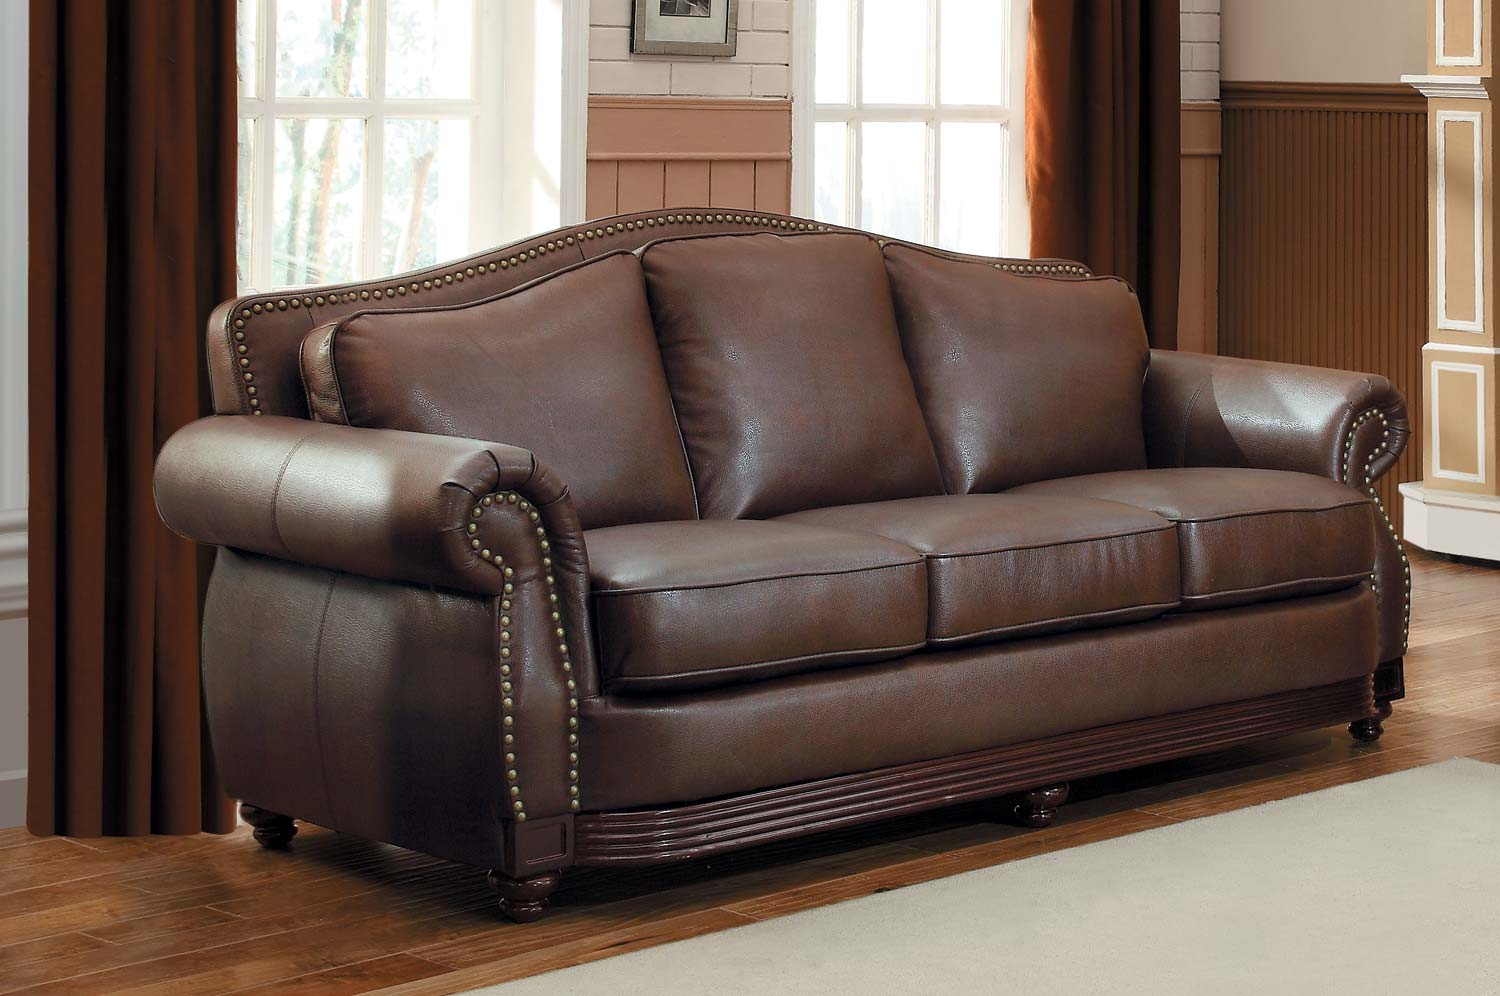 Homelegance Midwood Bonded Leather Sofa - Dark Brown